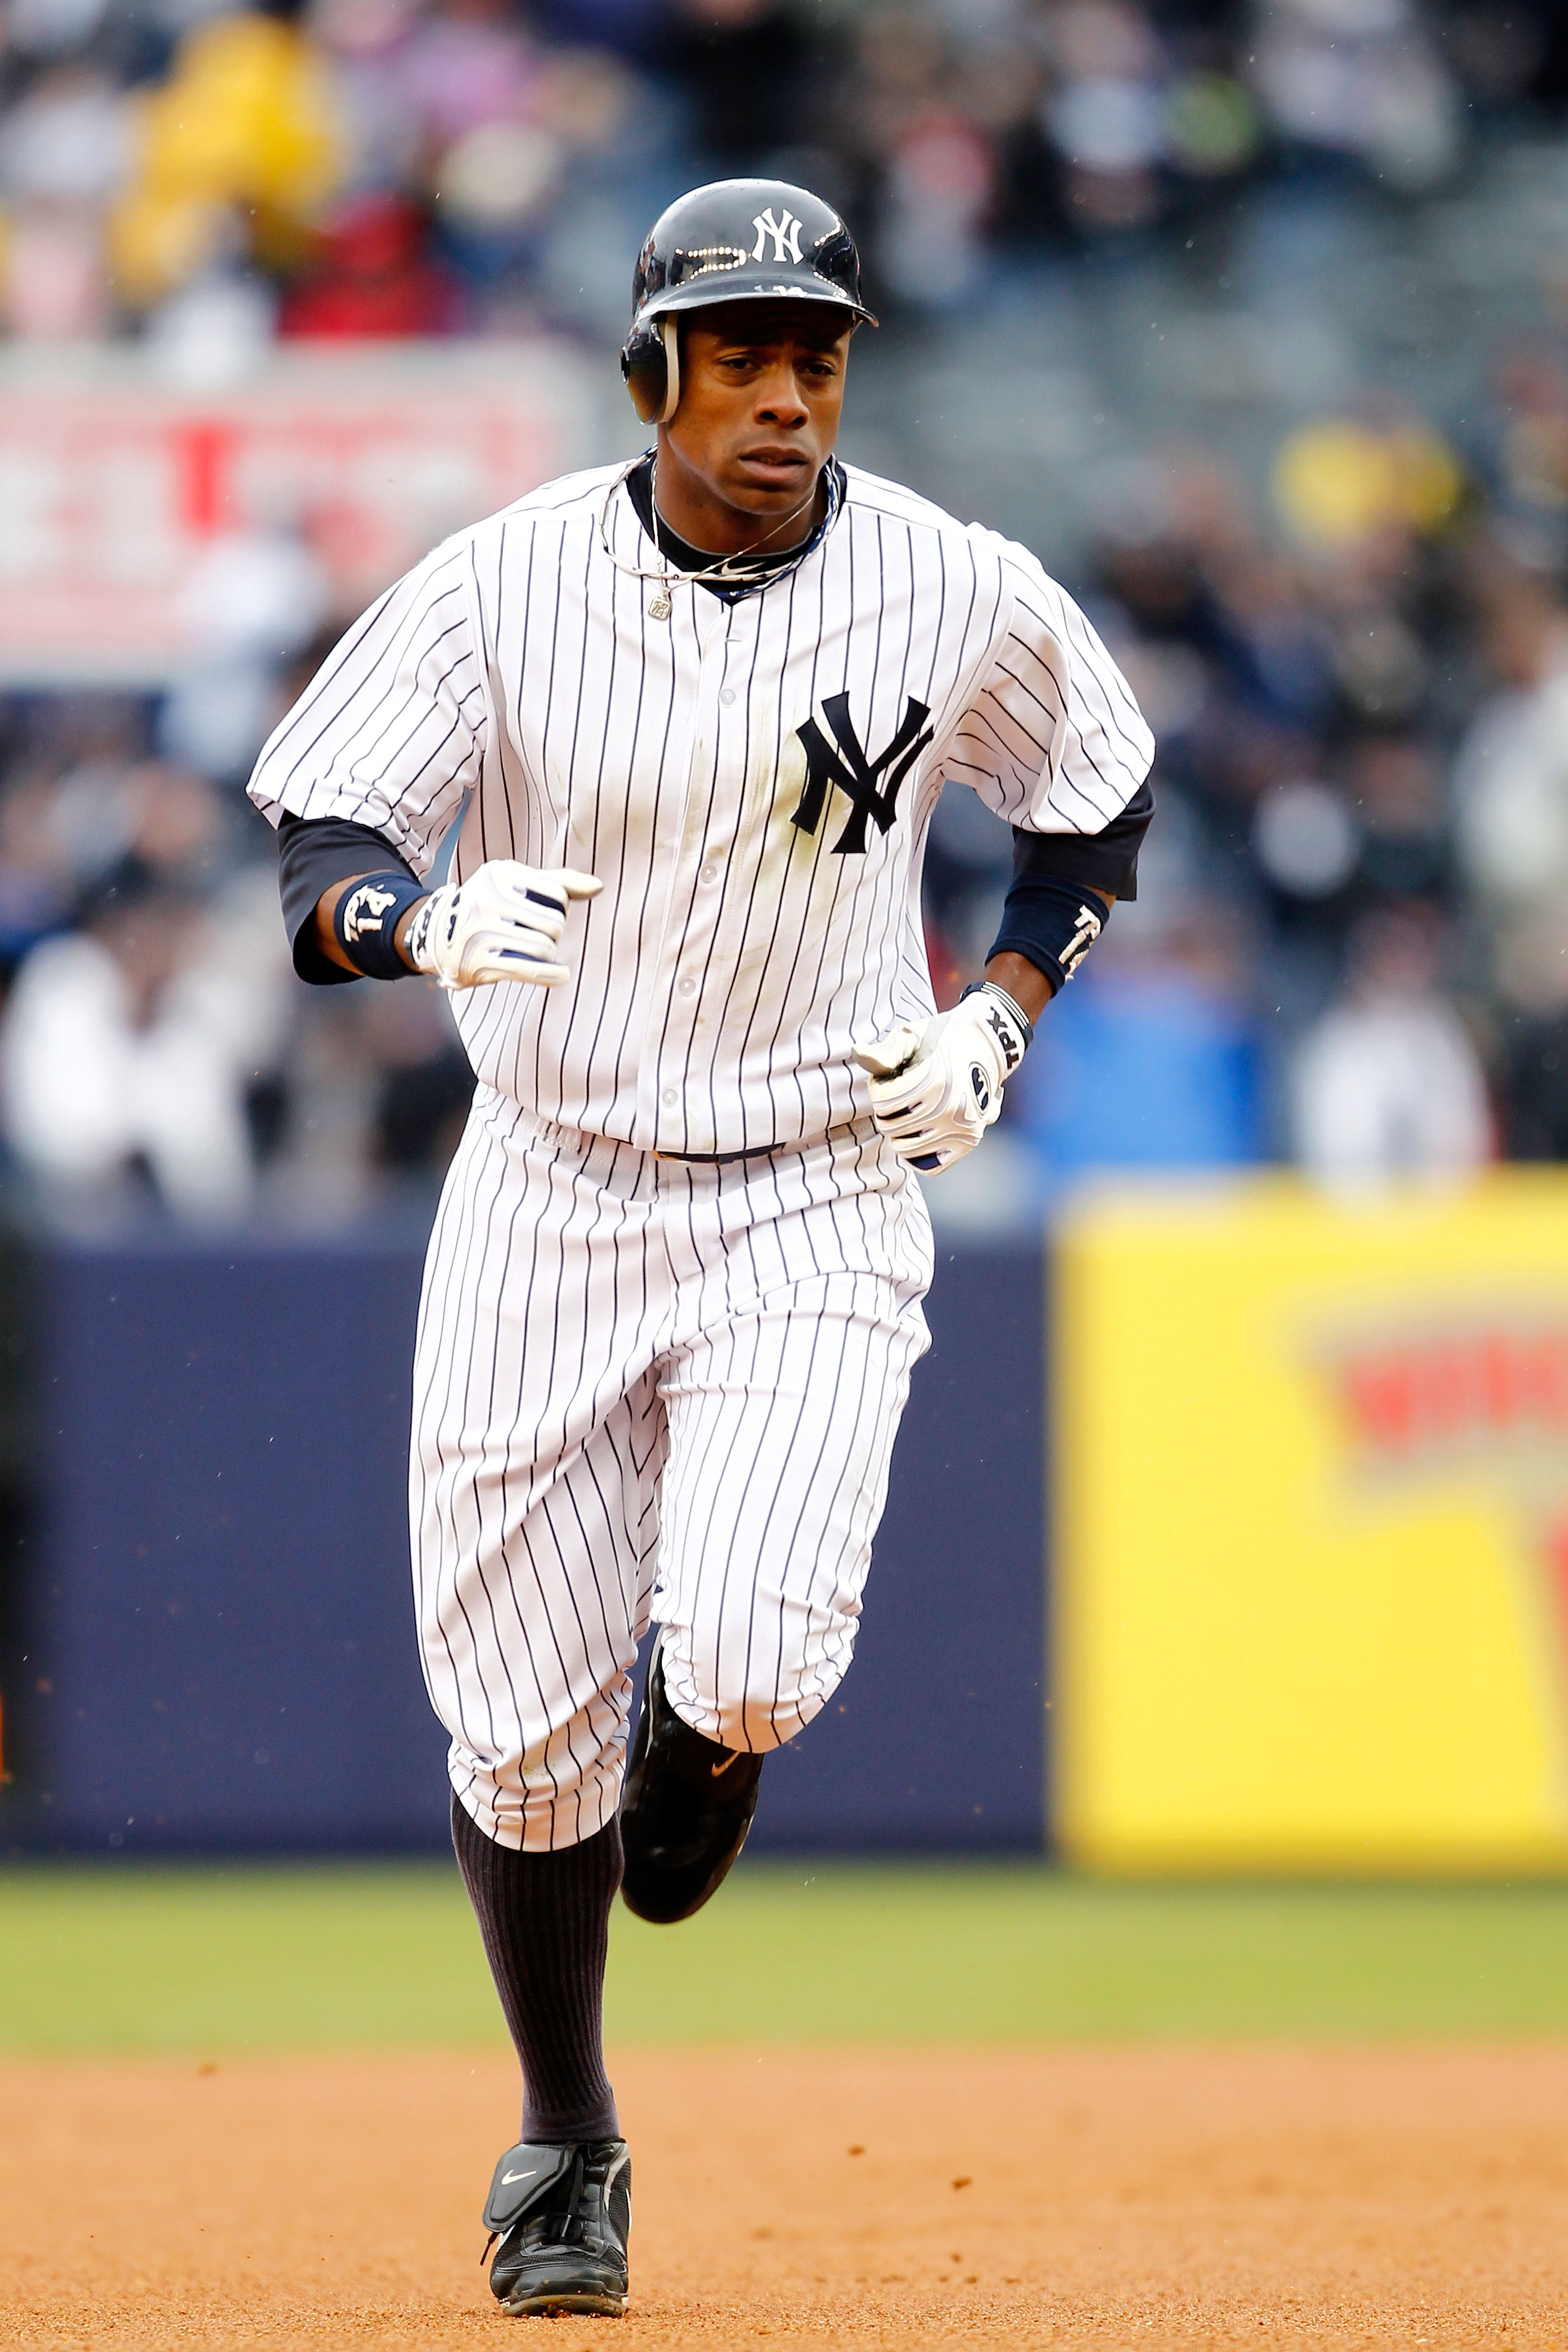 NEW YORK, NY - MARCH 31:  Curtis Granderson #14 of the New York Yankees rounds the bases after hitting a home run to right field in the seventh inning against the Detroit Tigers on Opening Day at Yankee Stadium on March 31, 2011 in the Bronx borough of Ne